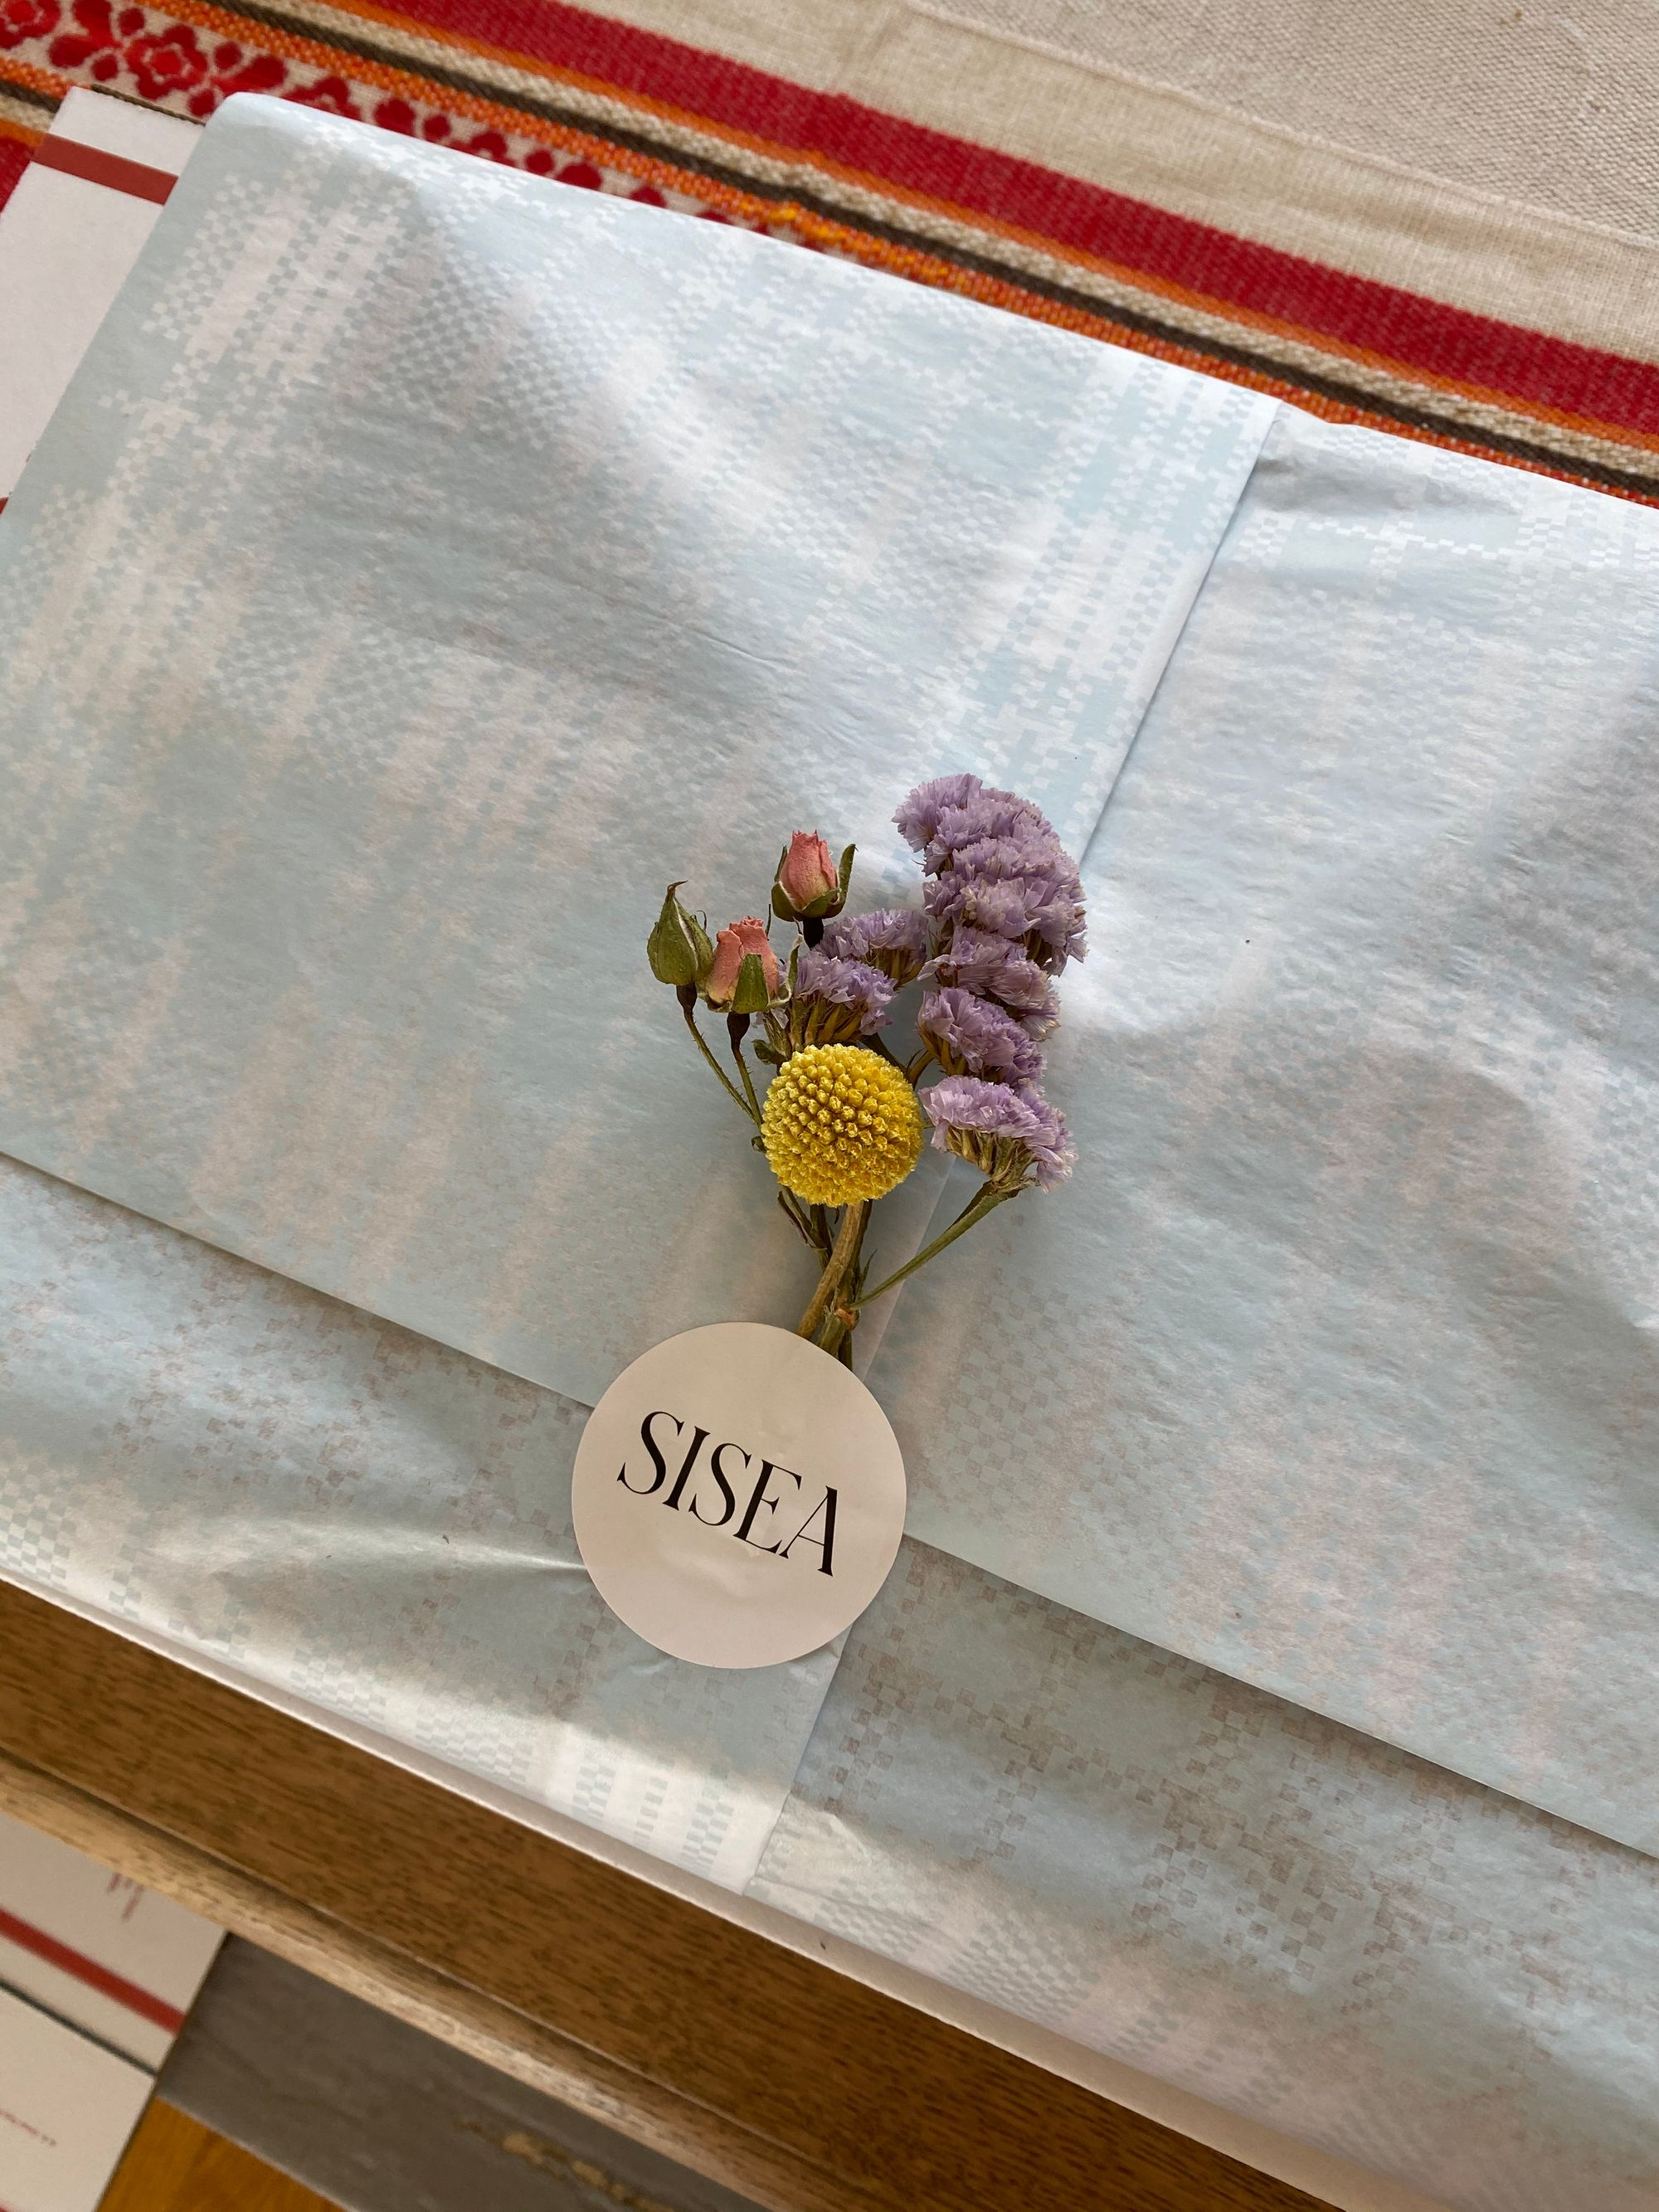 SISEA: Artful + Thoughtful RTWs, Accessories and Everything Else in Between